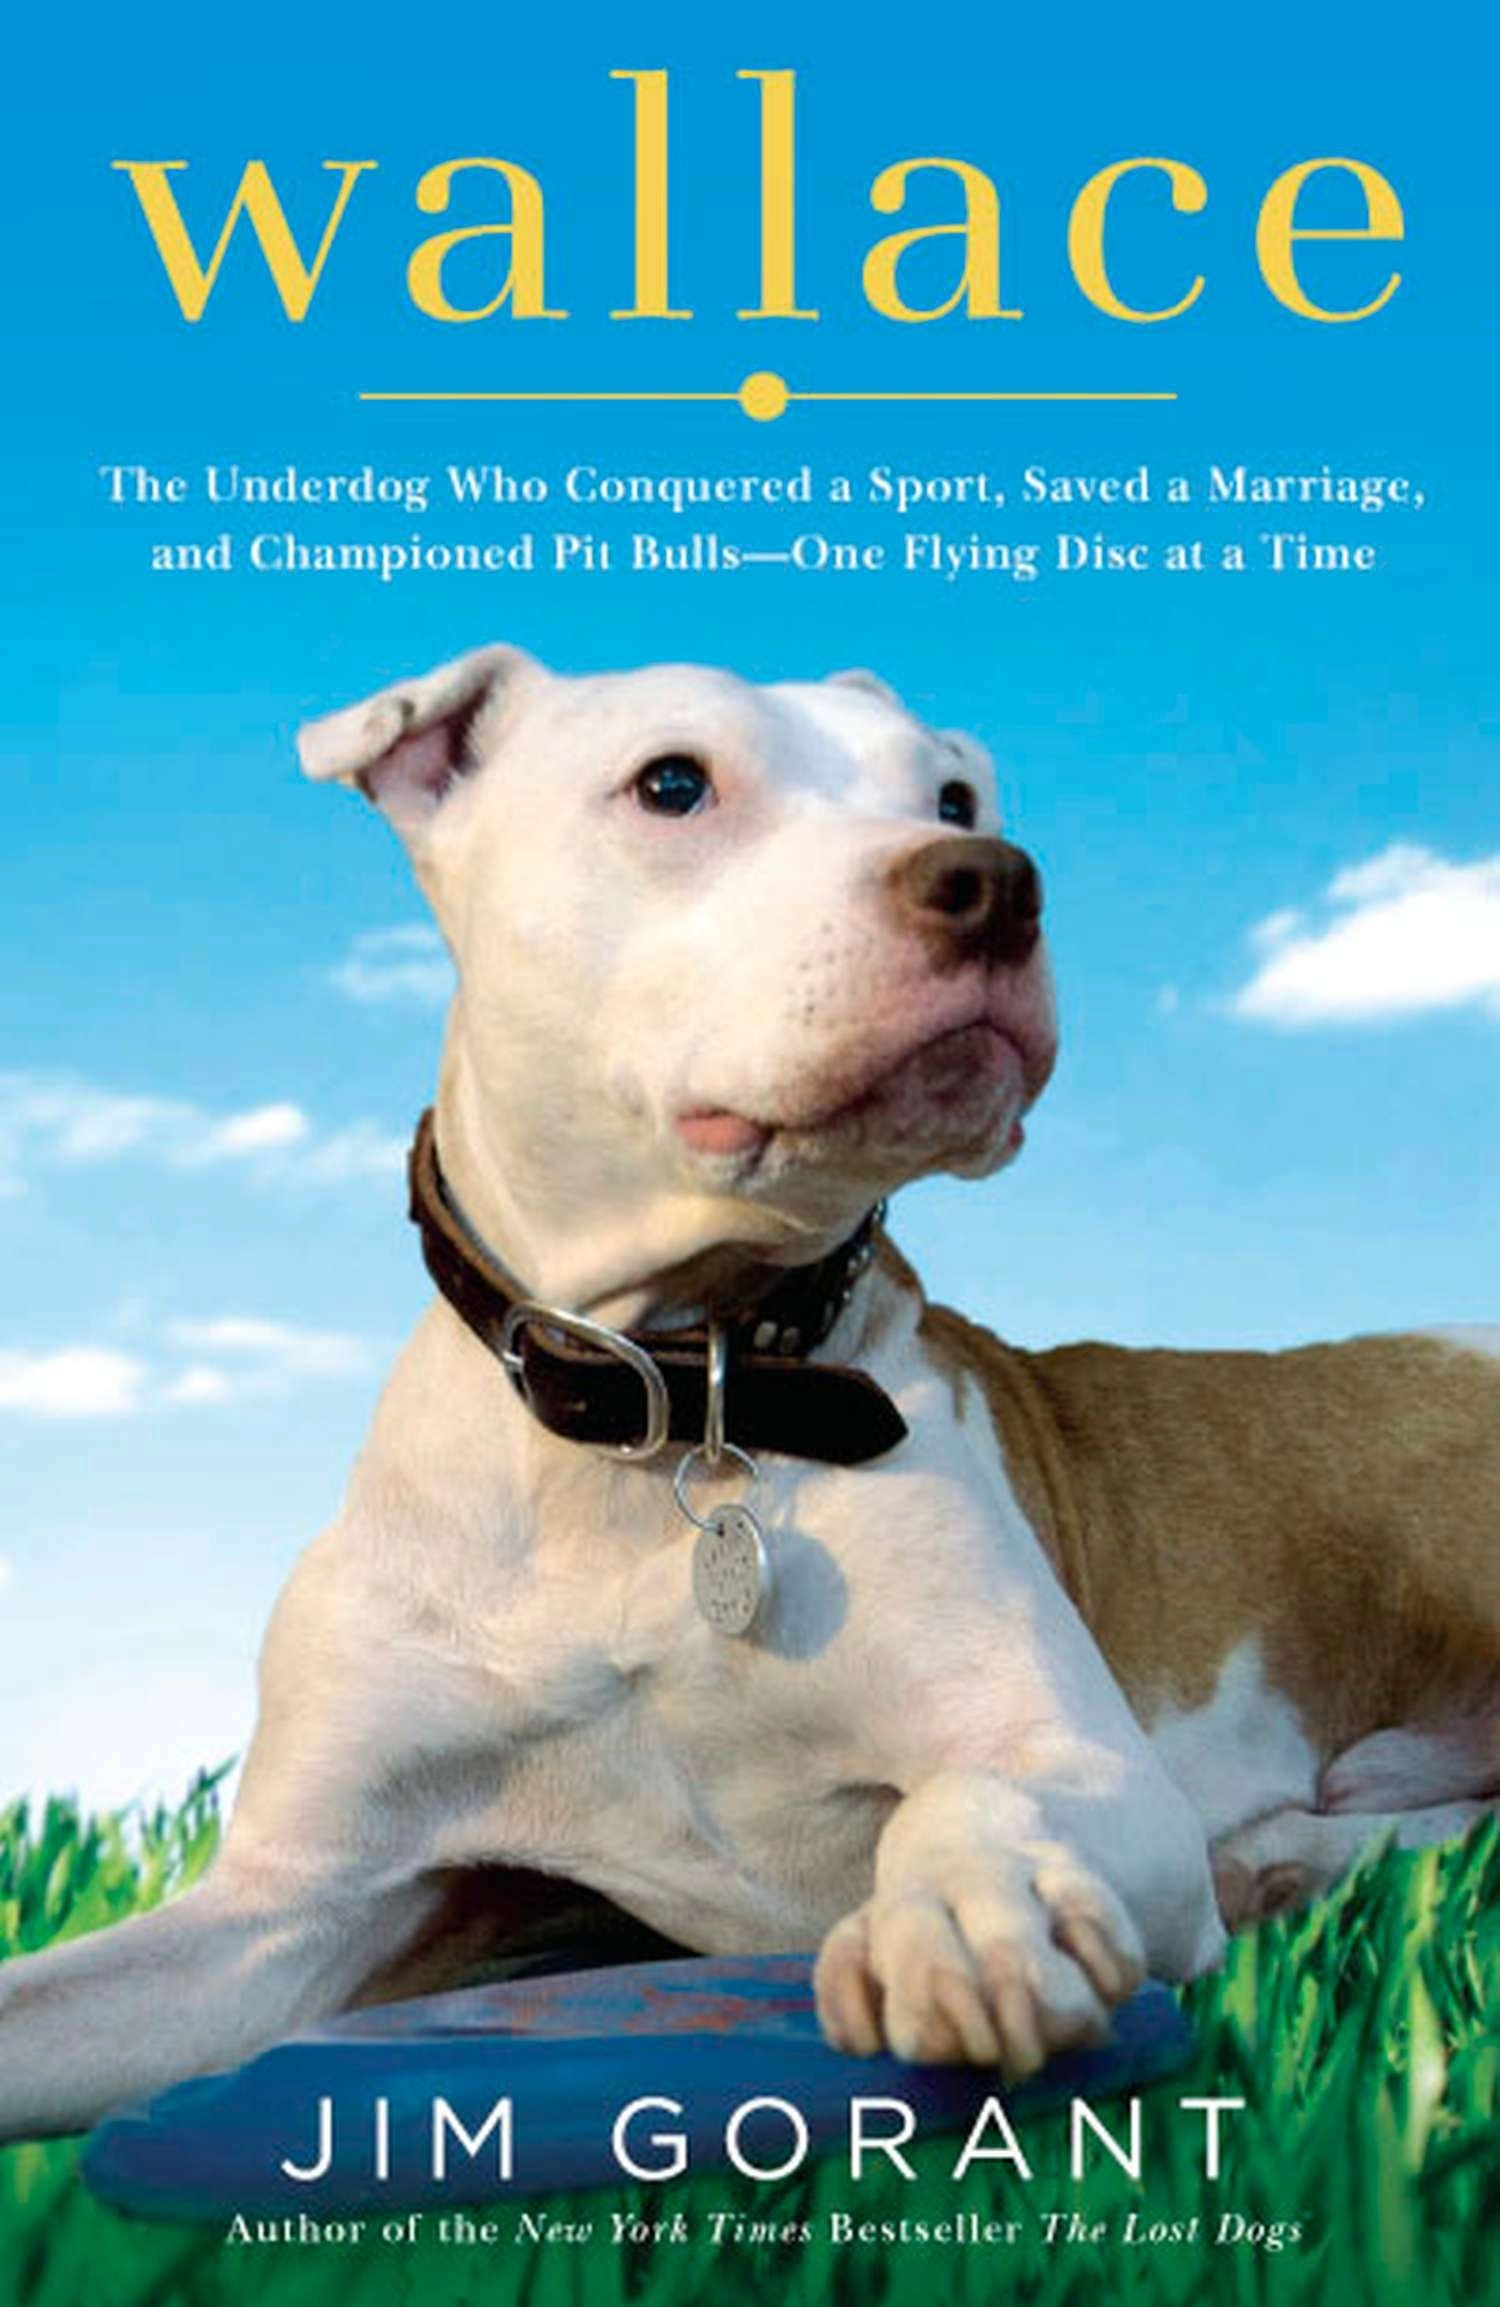 Wallace: The Underdog Who Conquered a Sport, Saved a Marriage, and Championed Pit Bulls-- One Flying Disc at a Time PDF